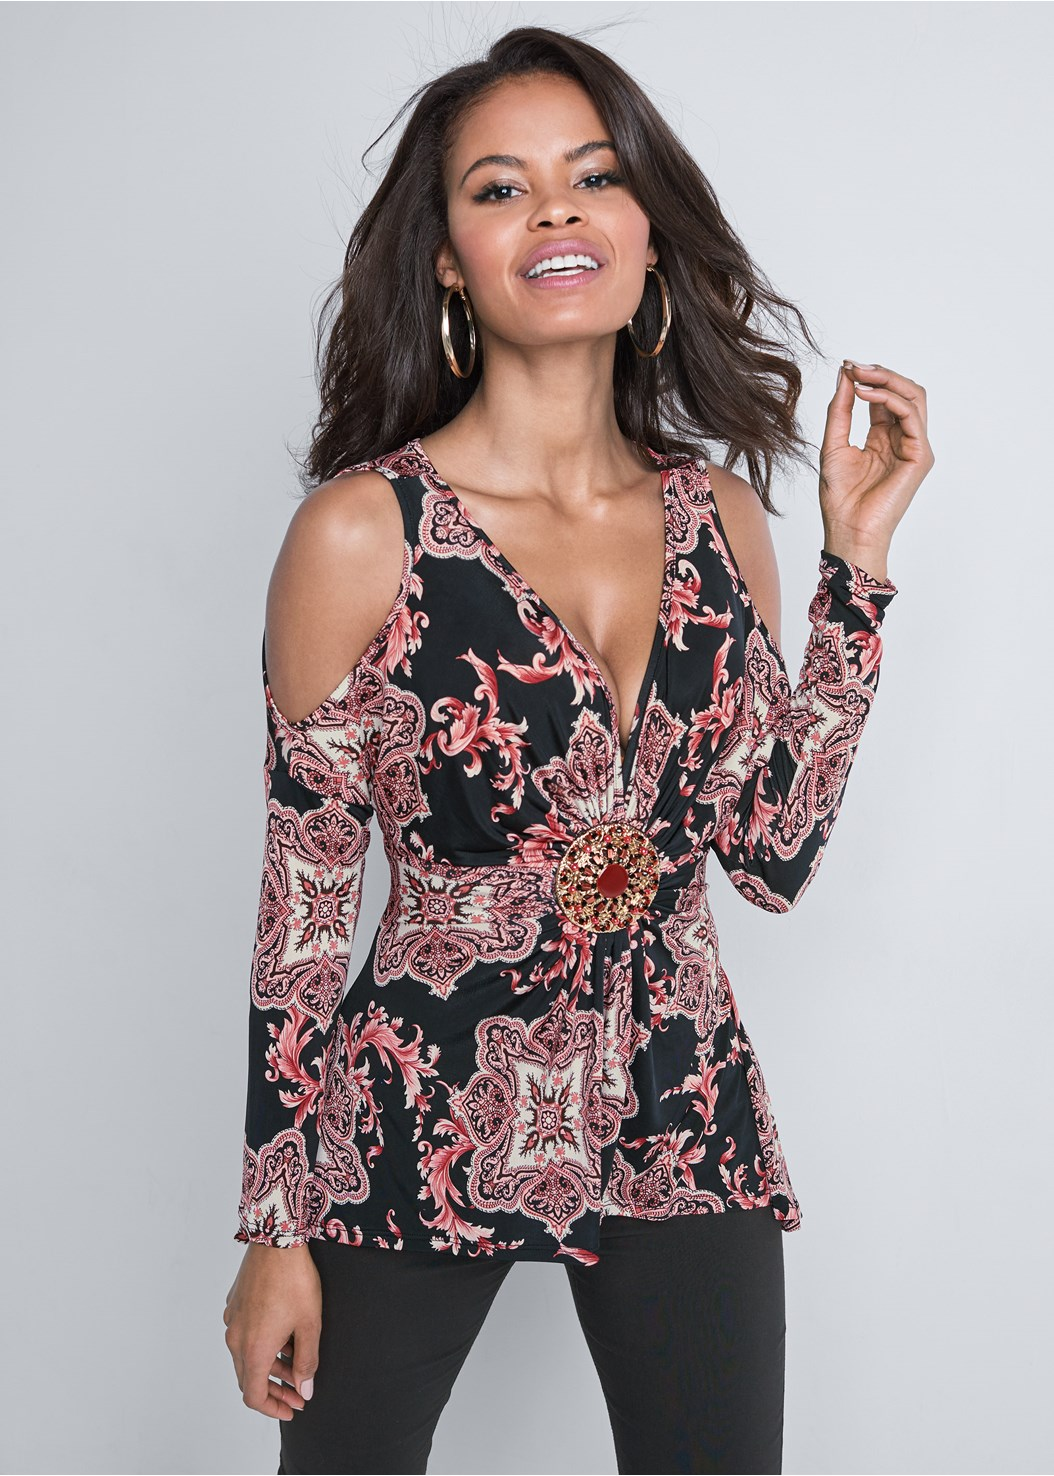 Paisley Cold Shoulder Top,Mid Rise Slimming Stretch Jeggings,Cupid U Plunge Bra,Ankle Strap Heels,Twist Hoop Earring